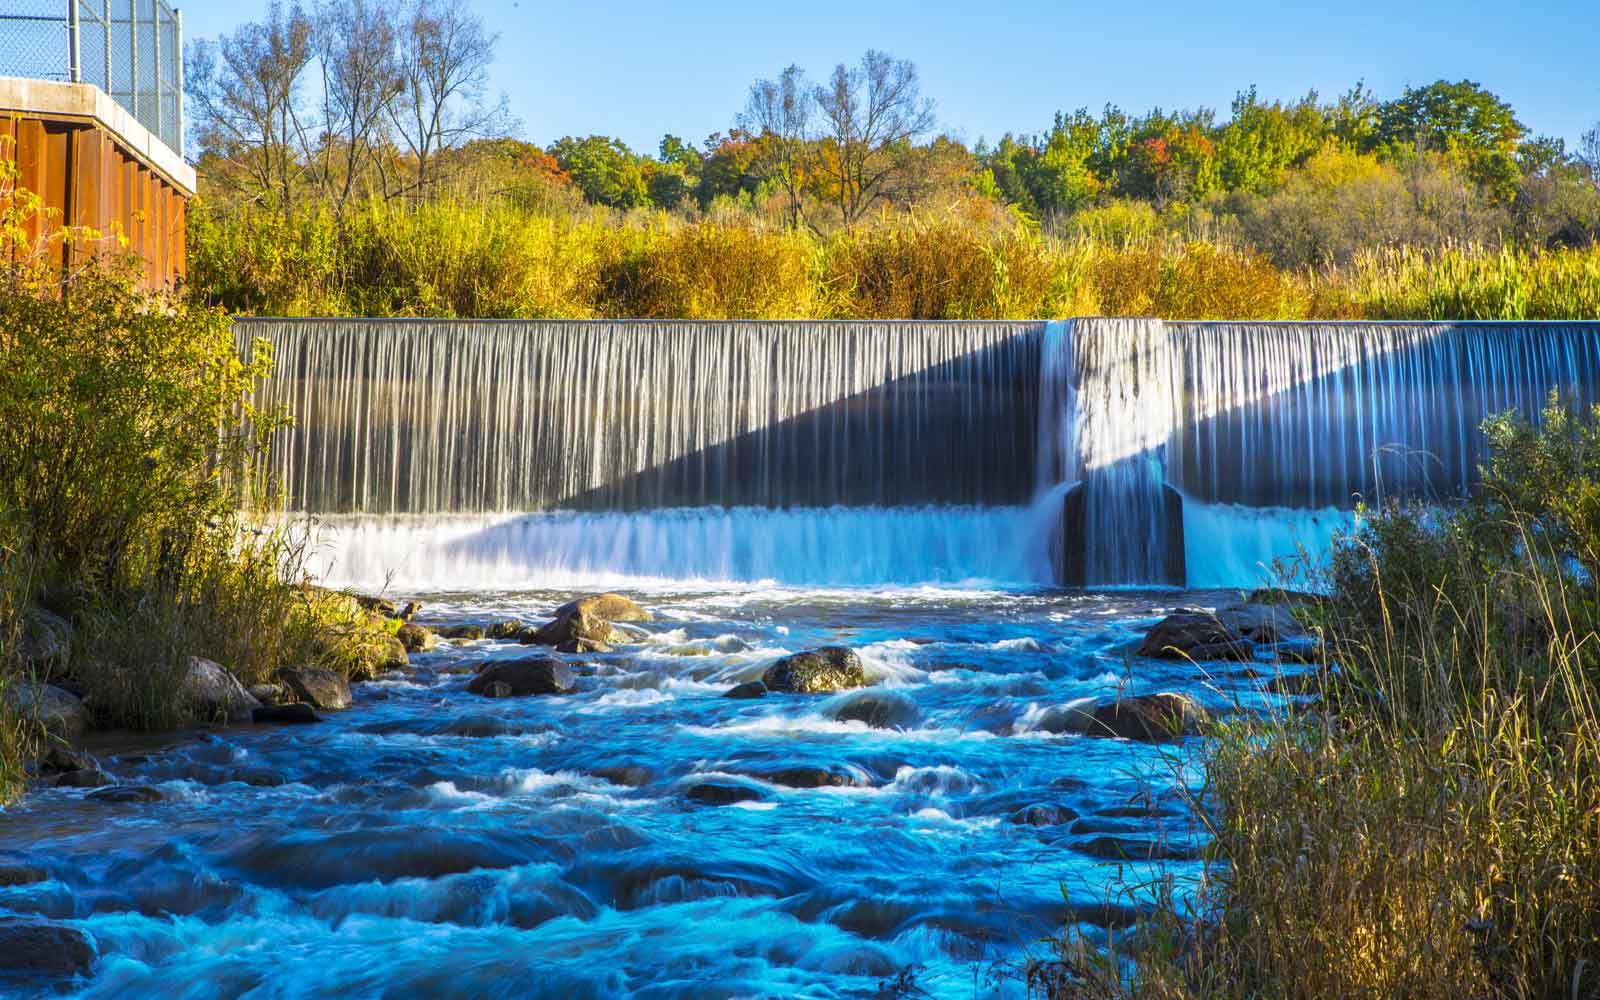 Whitevale Dam at New Seaton in Pickering, ON